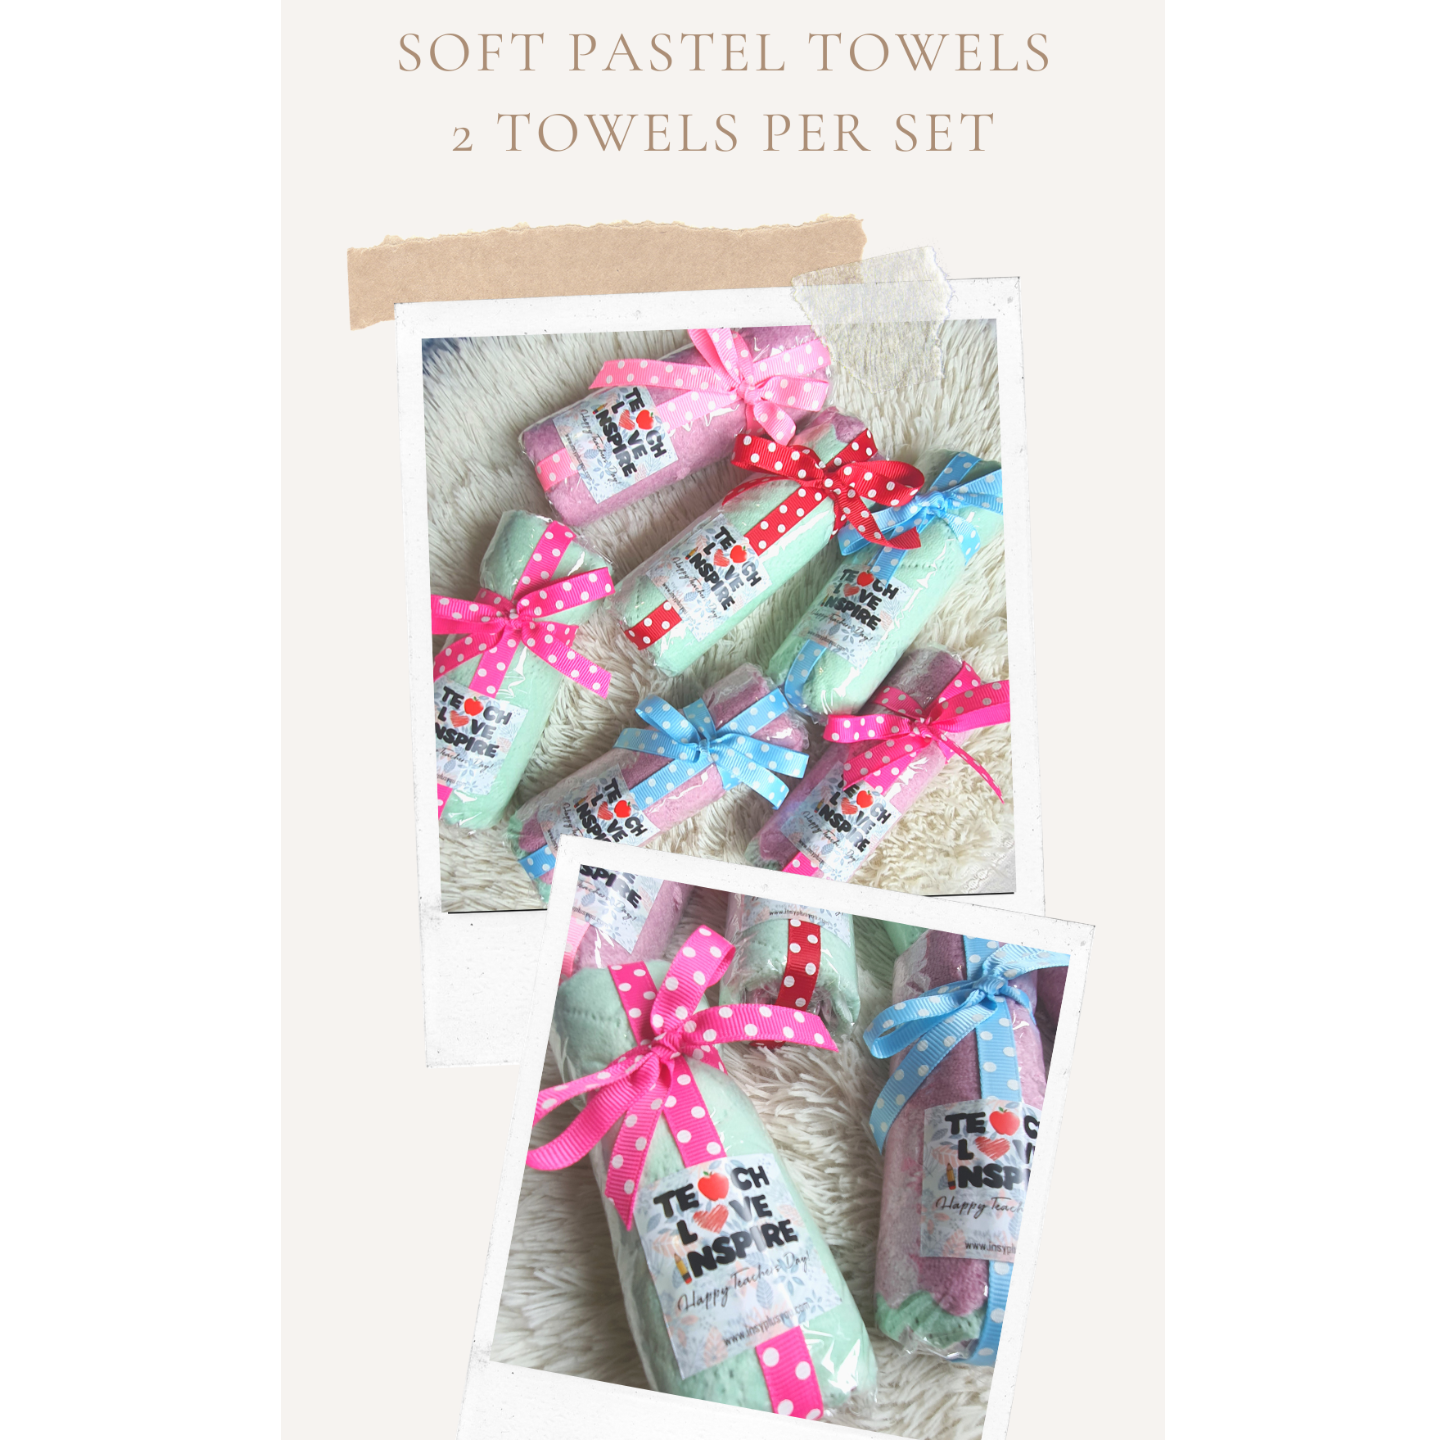 Soft Pastel Towels